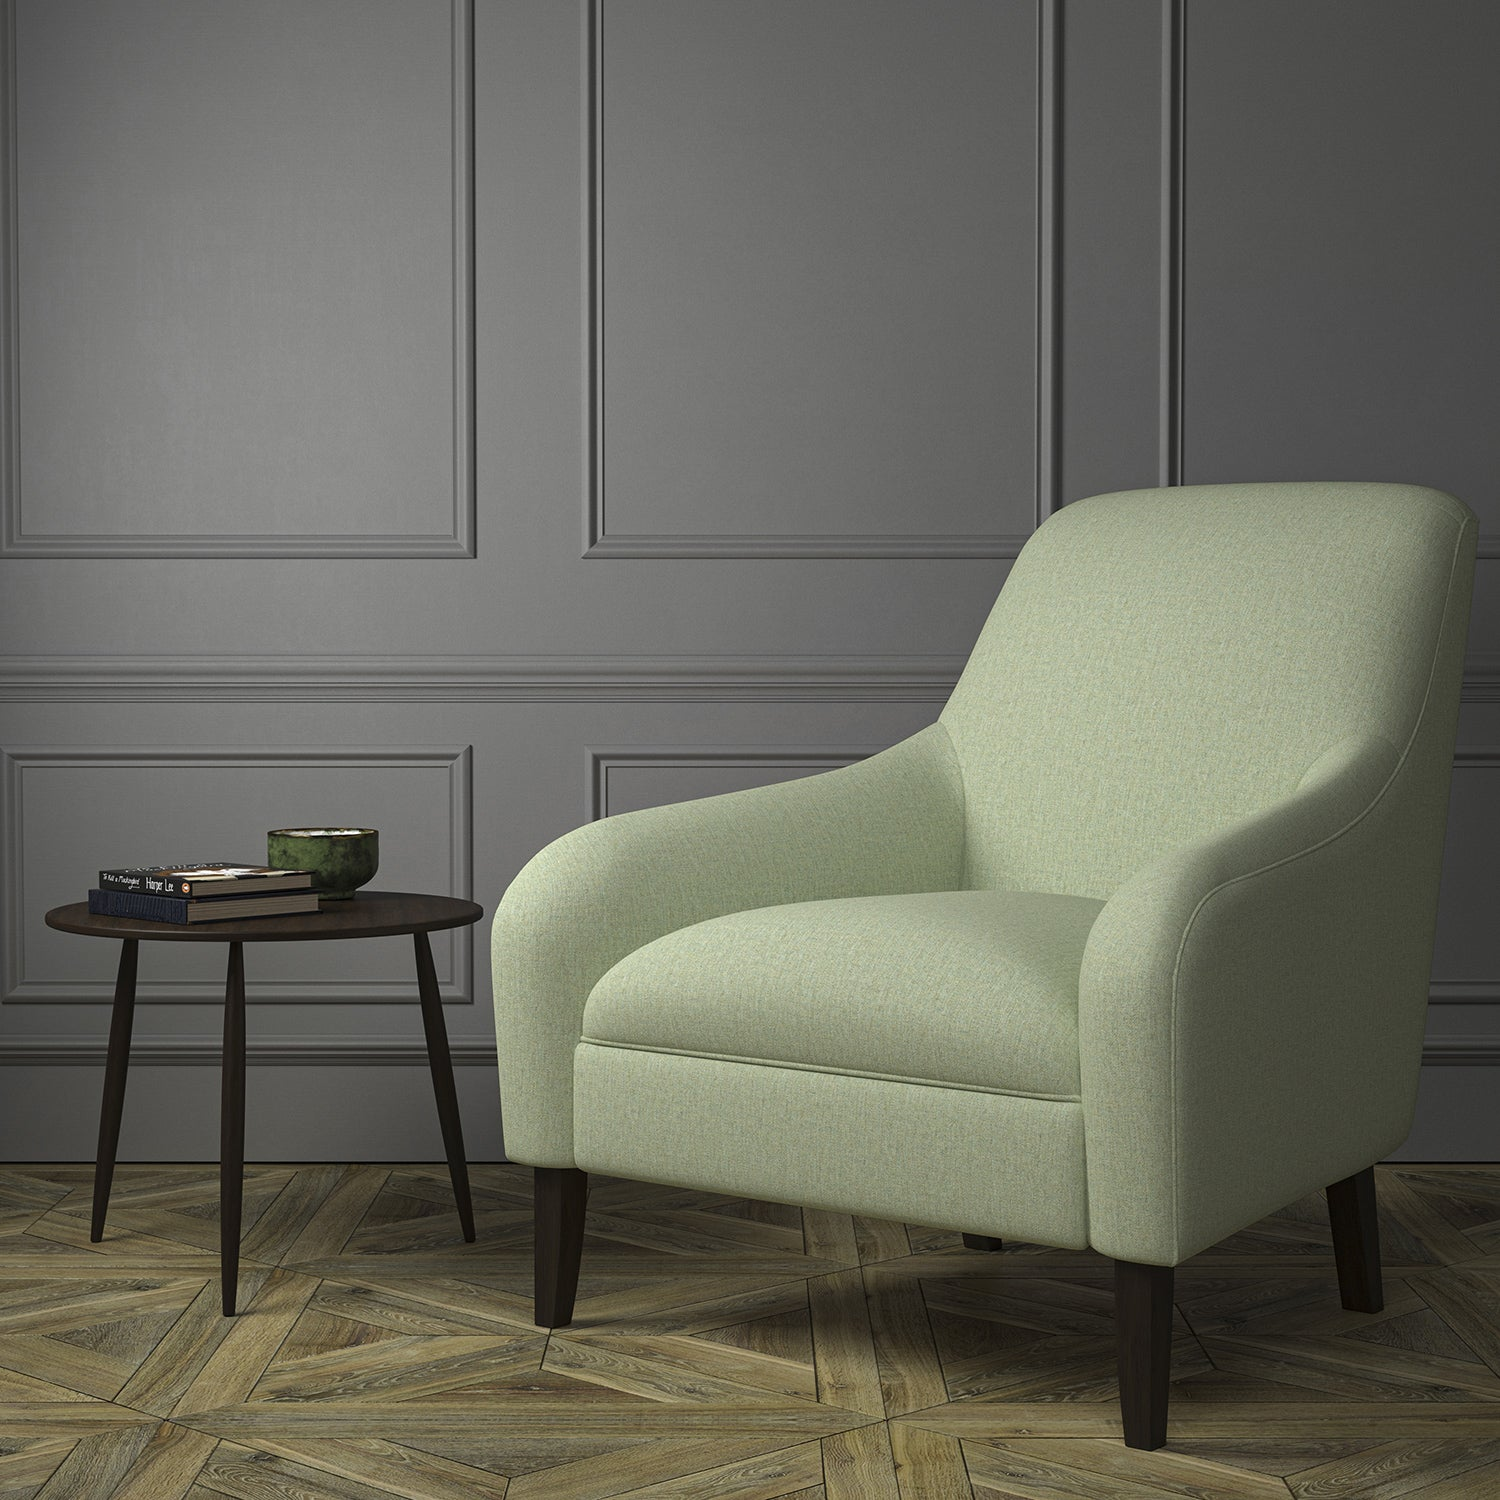 Chair upholstered in a luxury Scottish plain light green wool upholstery fabric